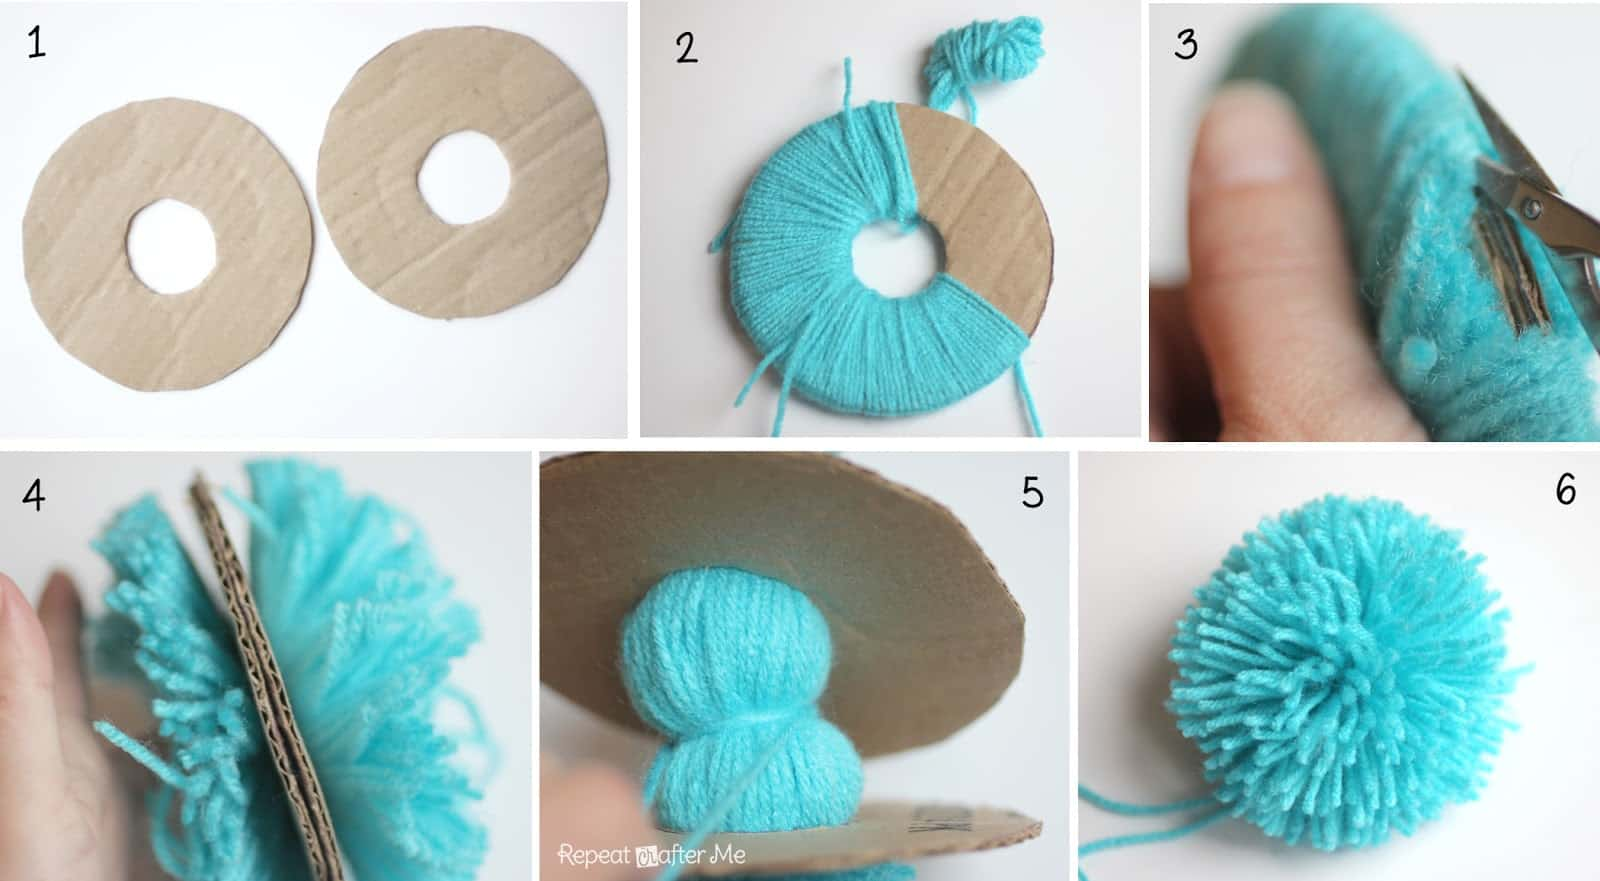 b7567a269d4 How to make simple large pom poms